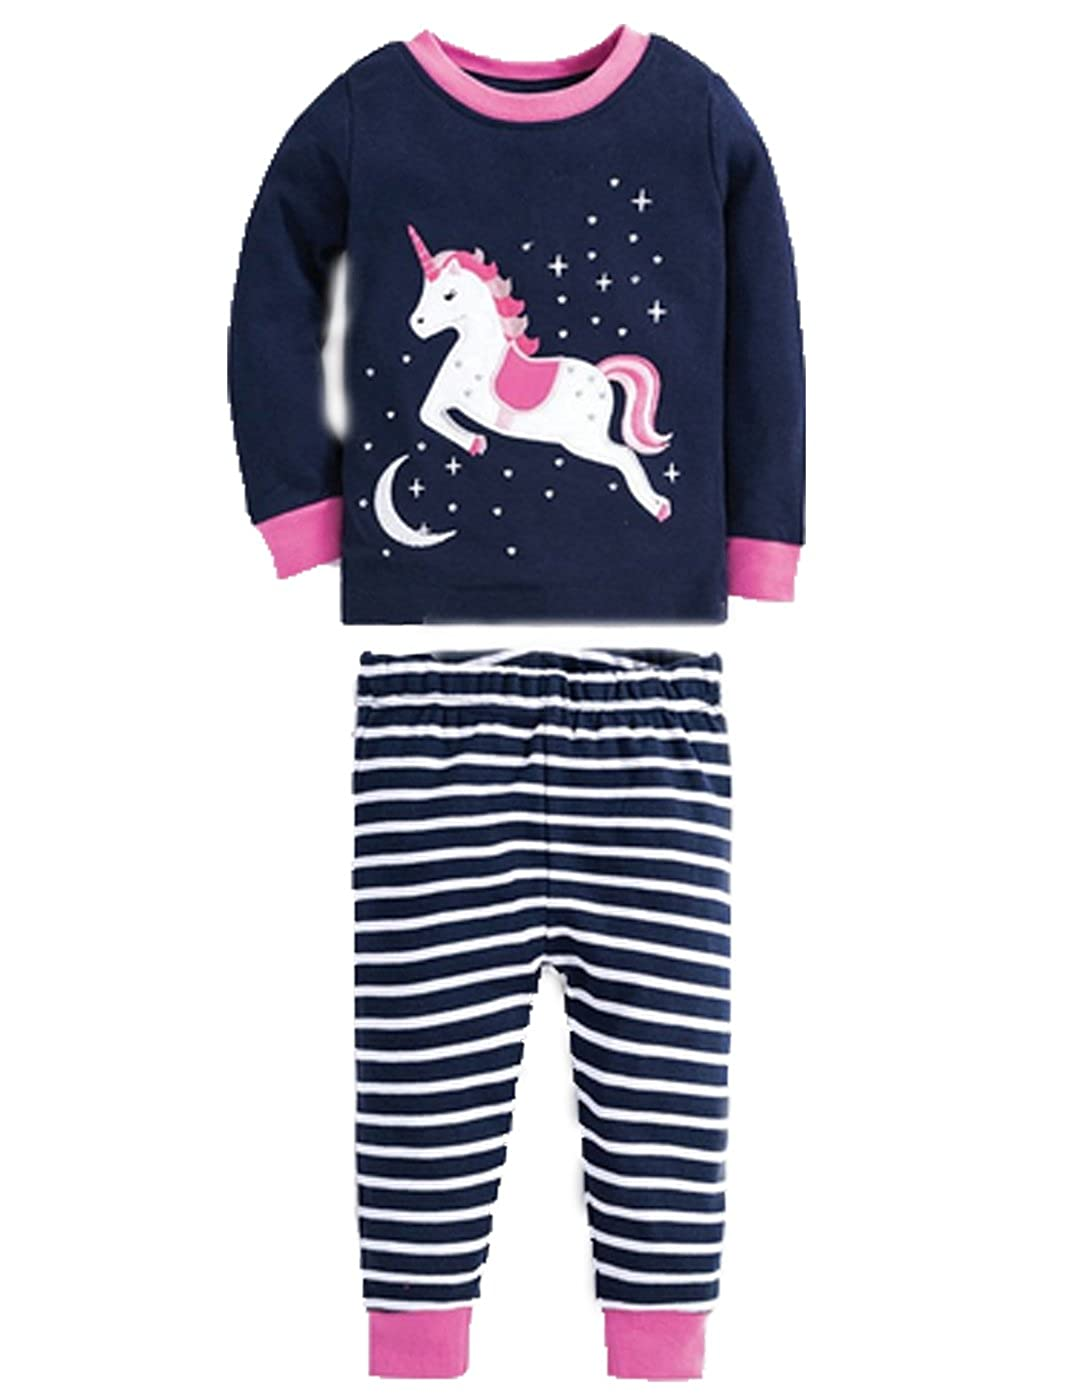 f87e7f9cd6 Amazon.com  Kevin s Mart 68 Little Girls Horse Pajamas Set Children  Christmas PJs 100% Cotton Sleepwear Size 2 to 7 Years  Clothing